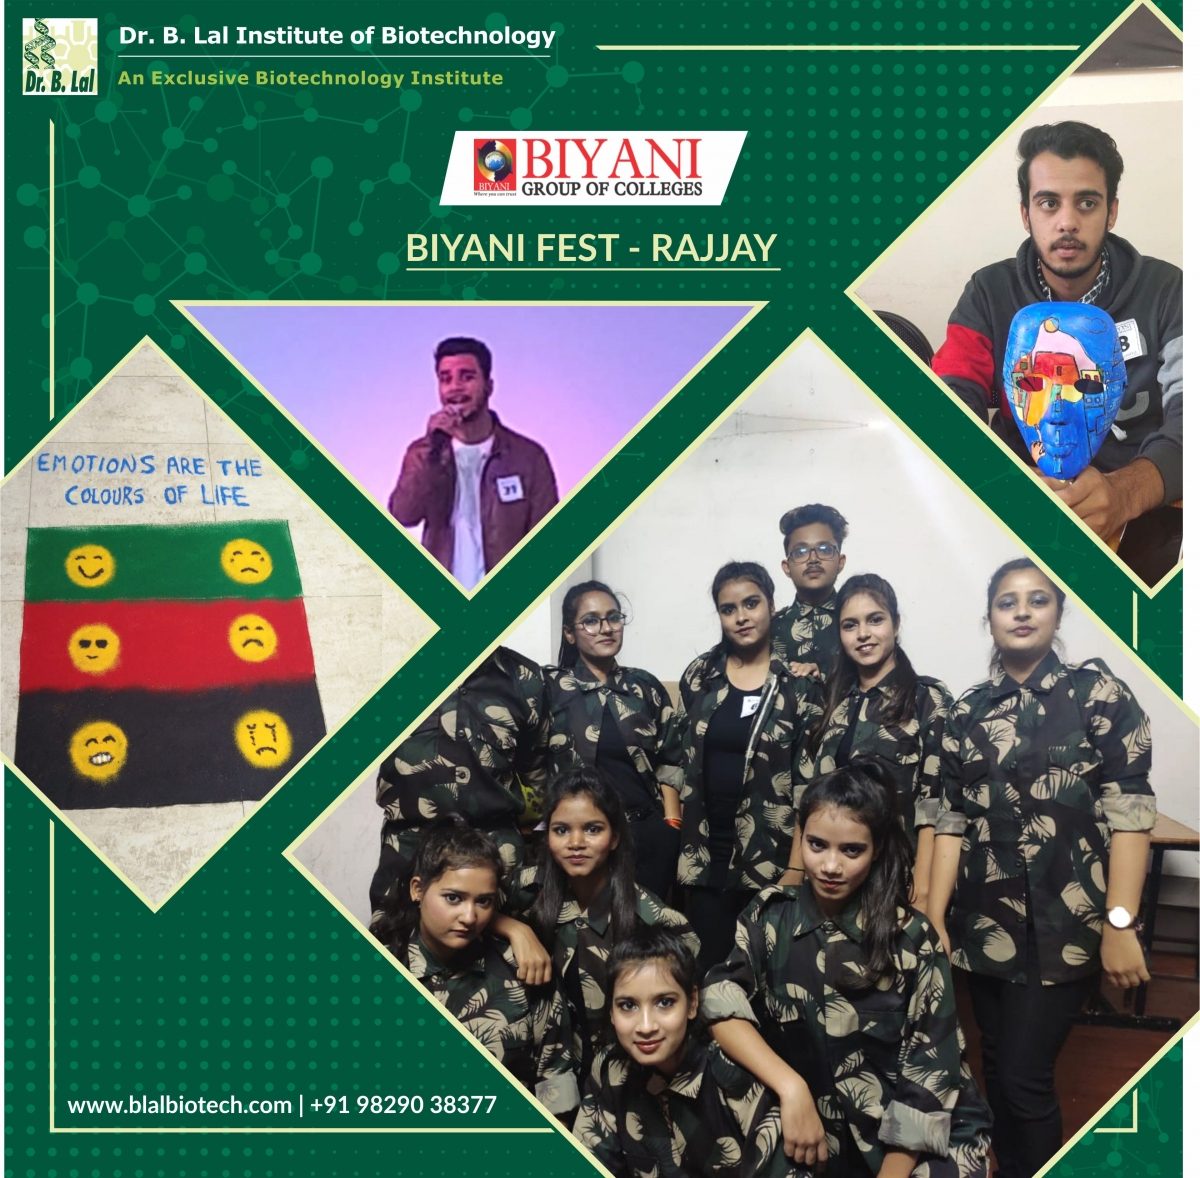 Biyani Group of Colleges Jaipur Fest - RAJJAY